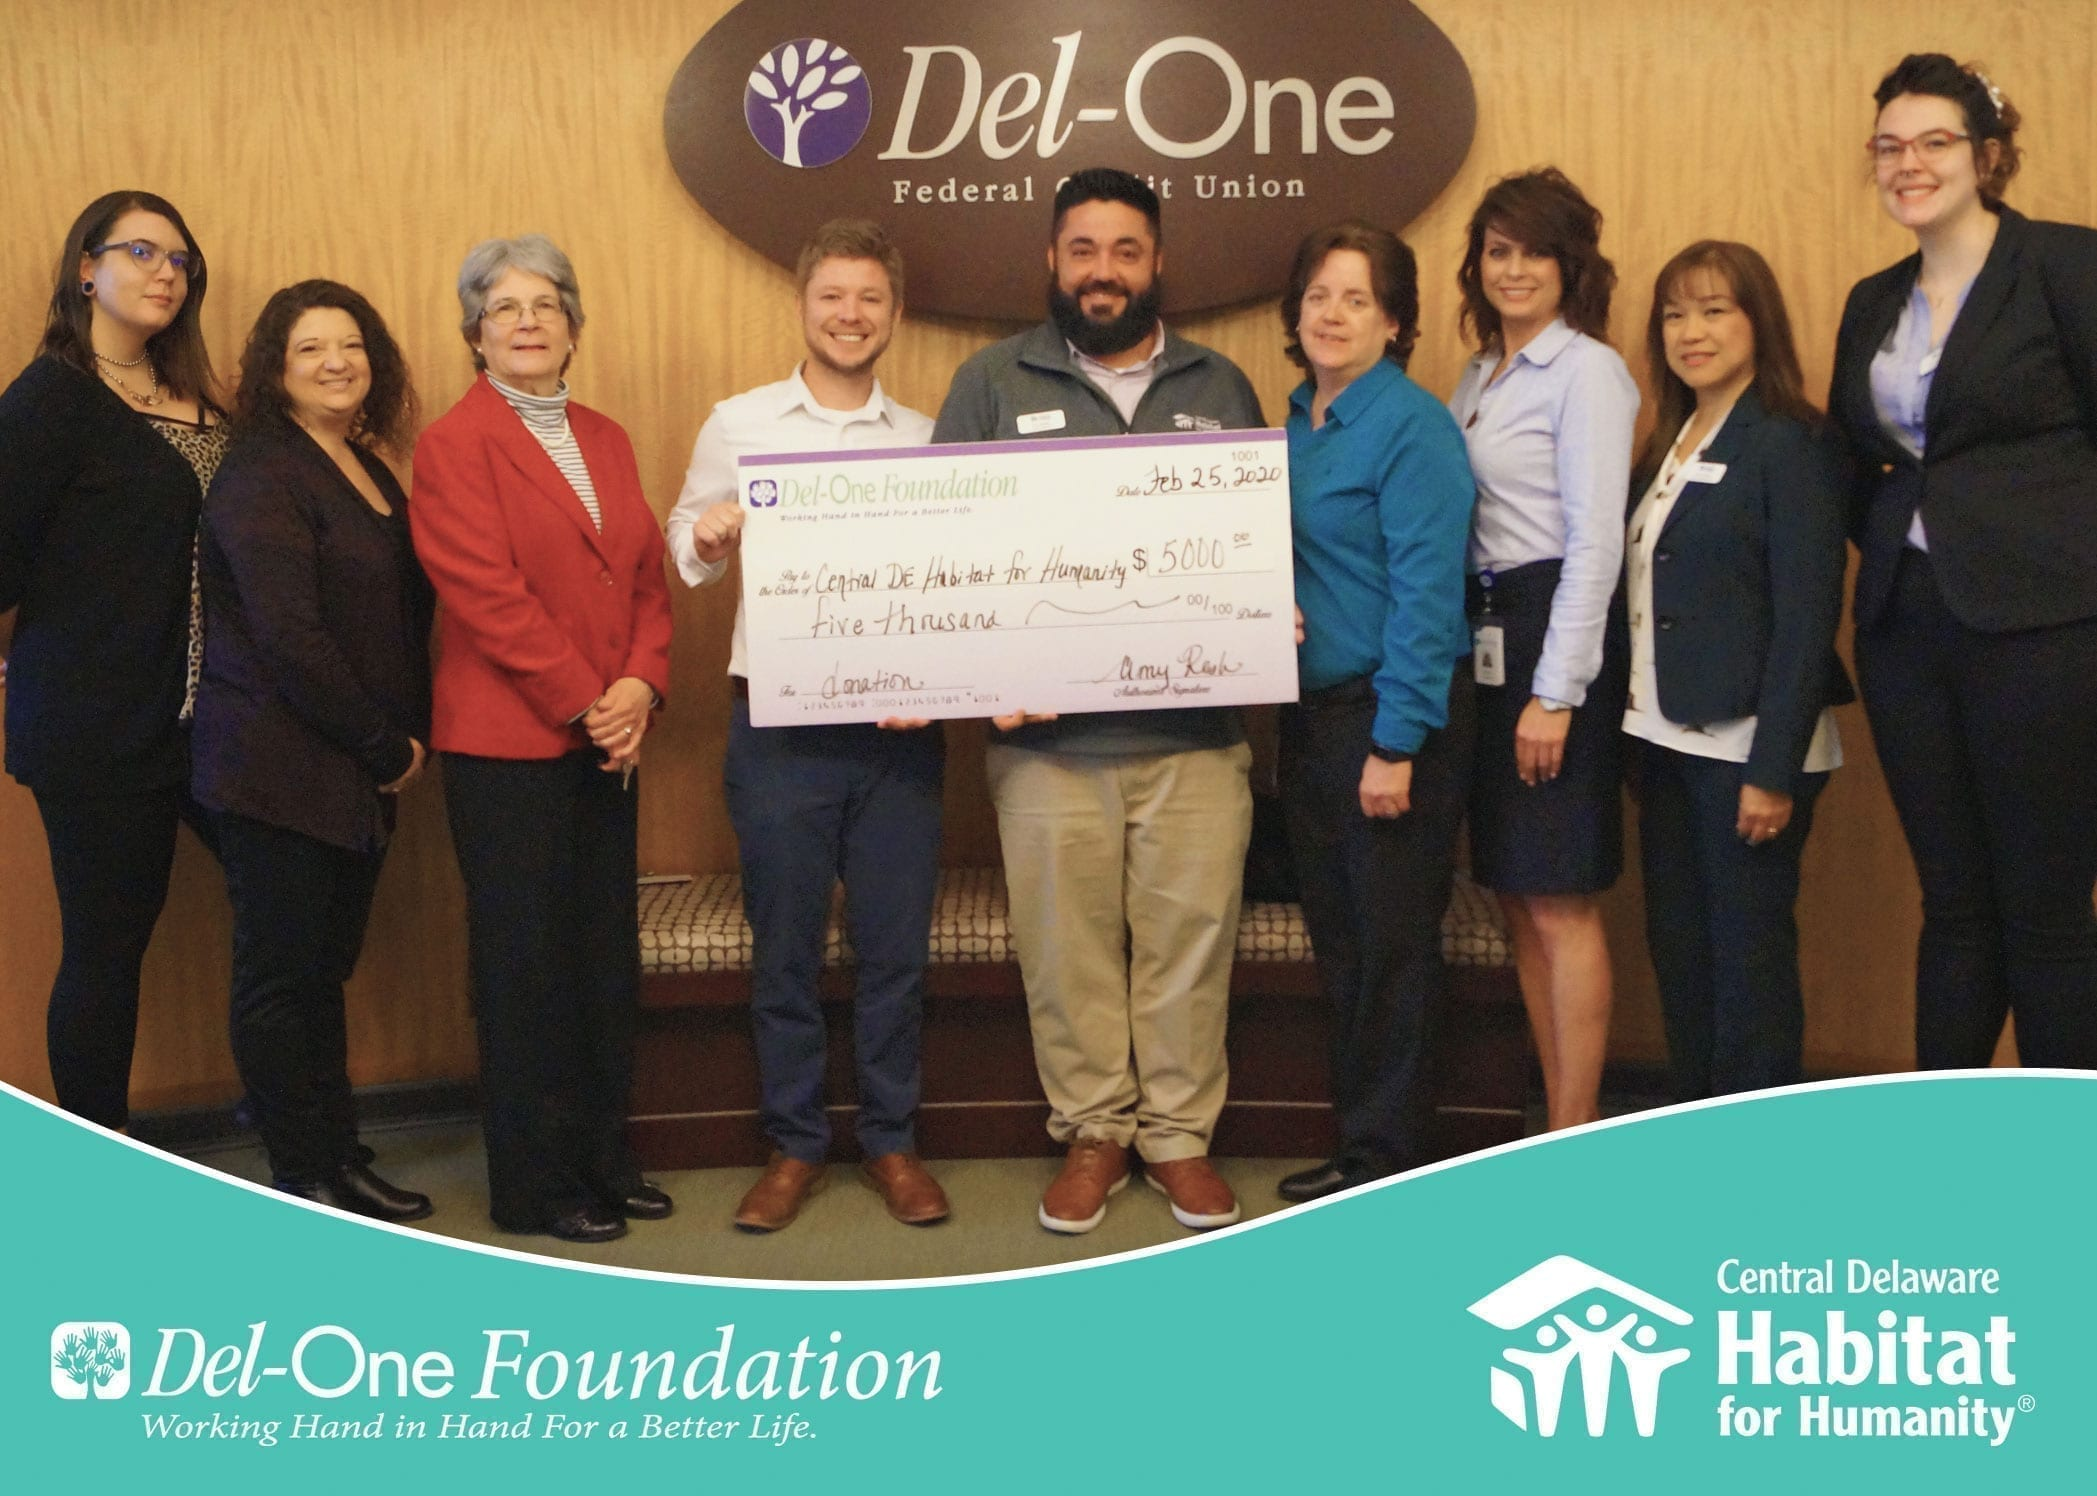 Del-One Foundation donates $5000 to the Central Delaware Habitat for Humanity